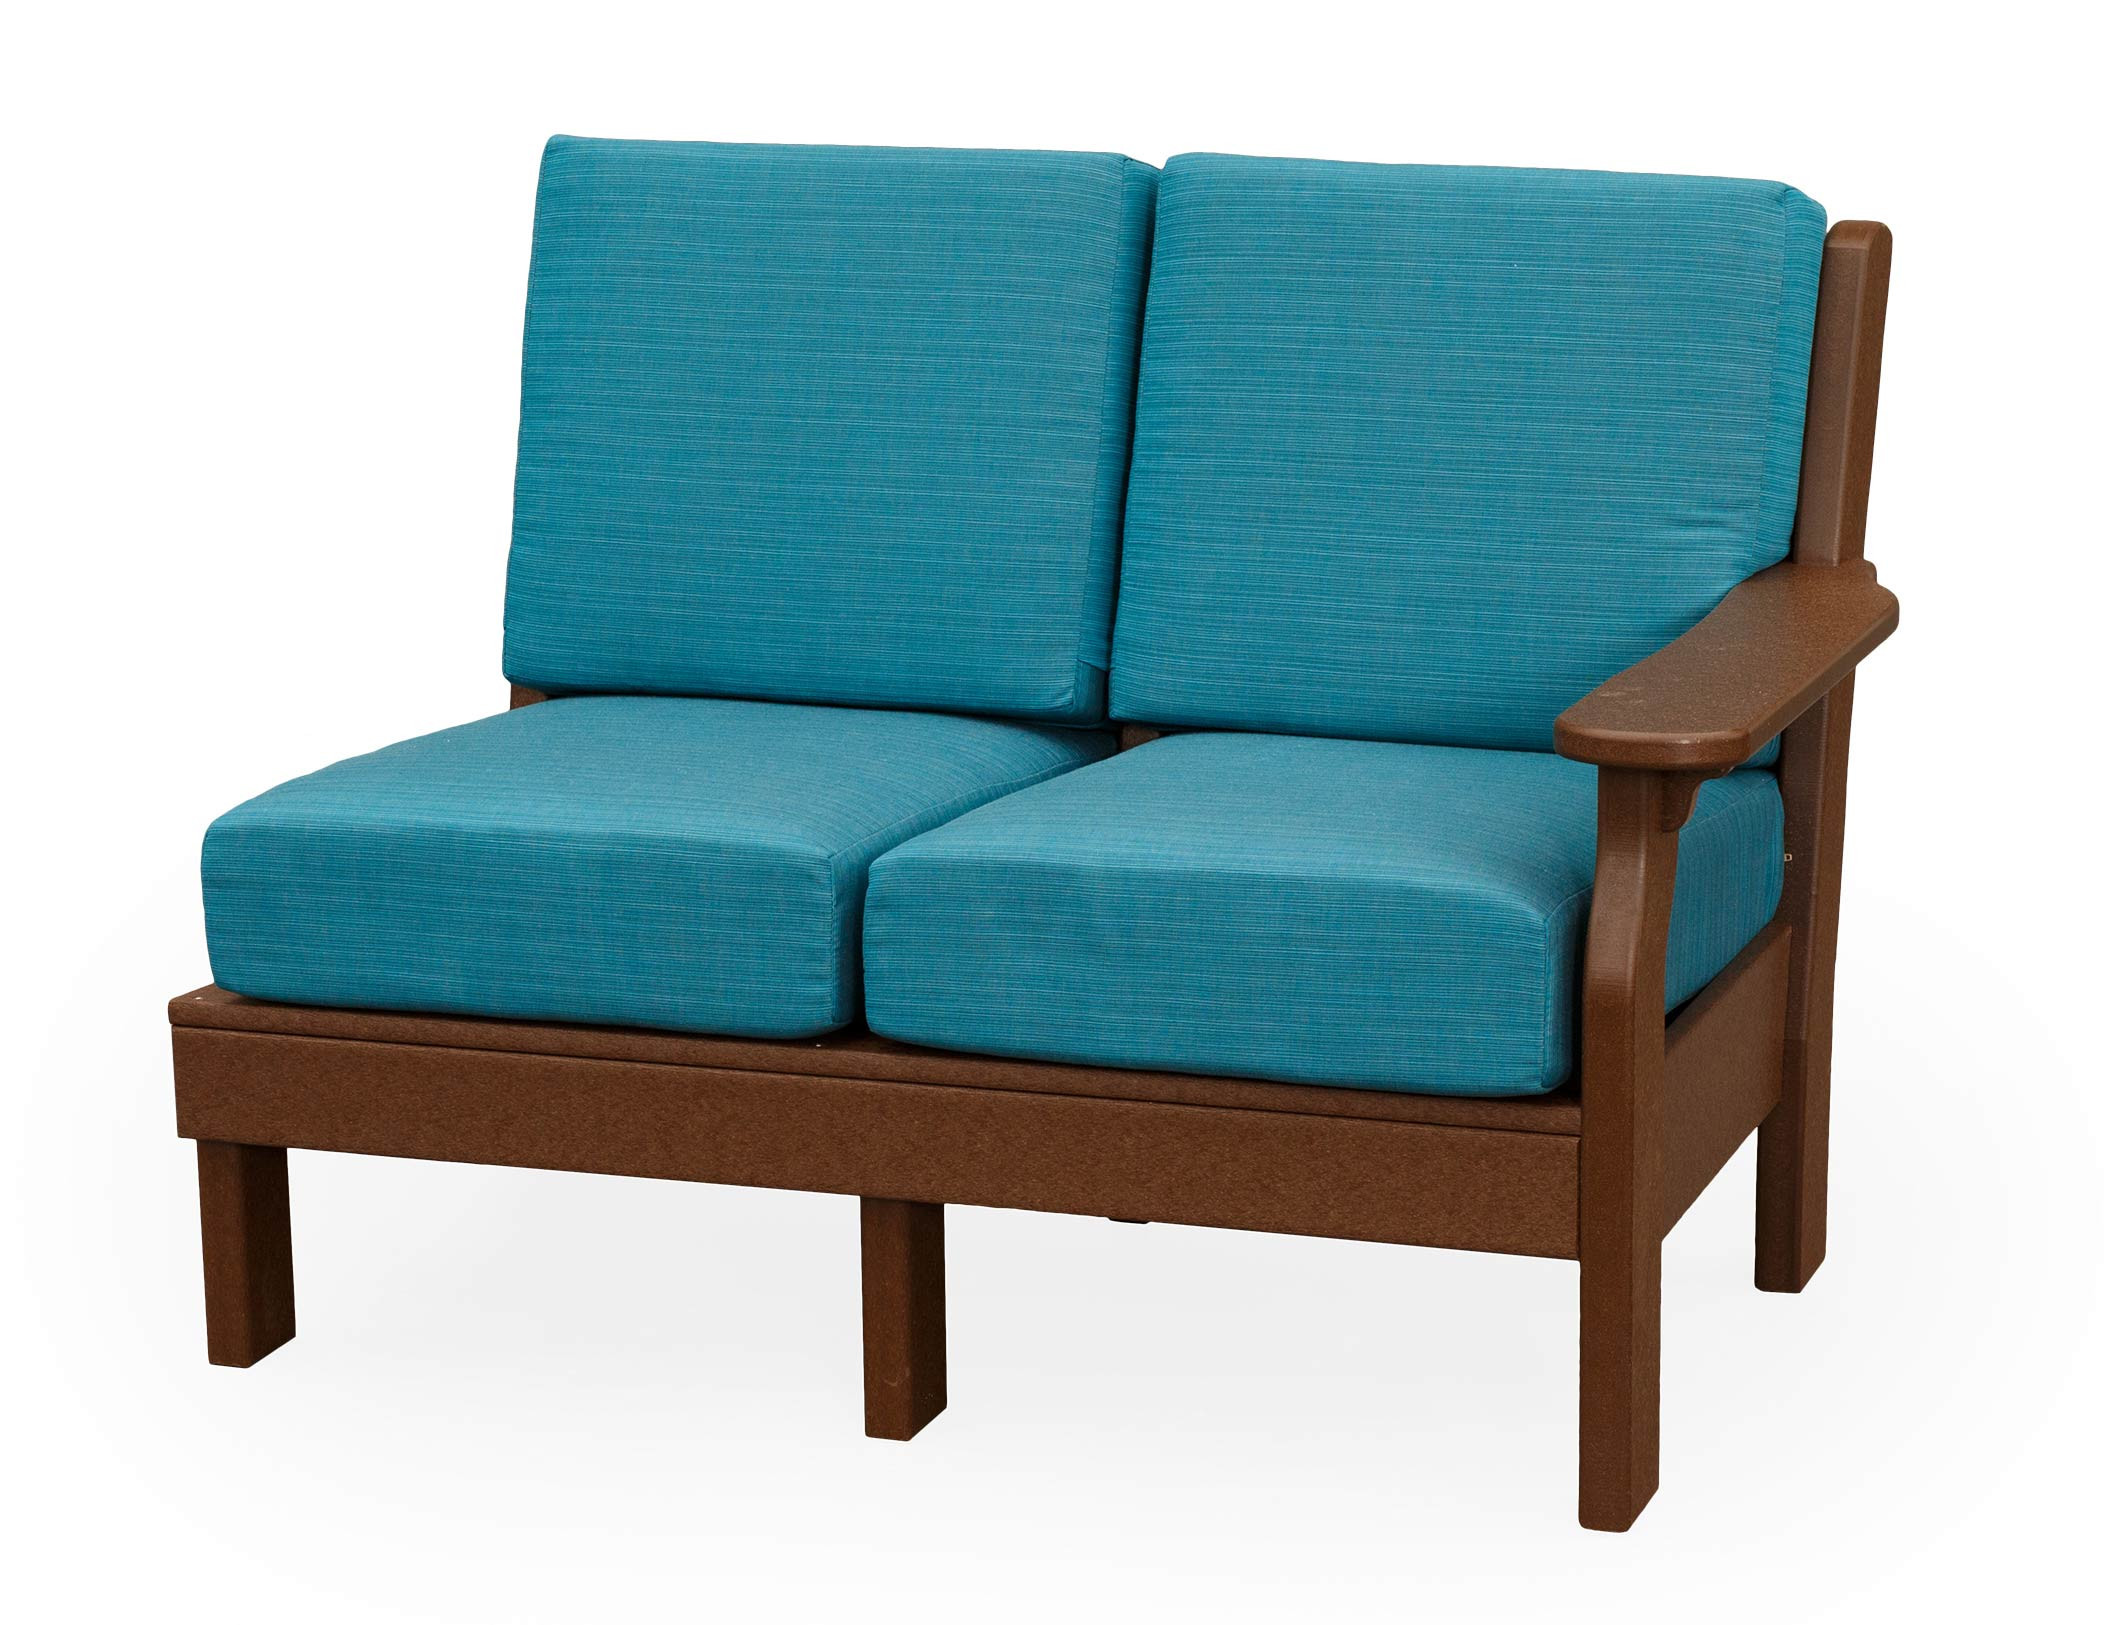 Best ideas about Outdoor Replacement Cushions . Save or Pin Deep Seating Replacement Cushions For Outdoor Furniture Now.